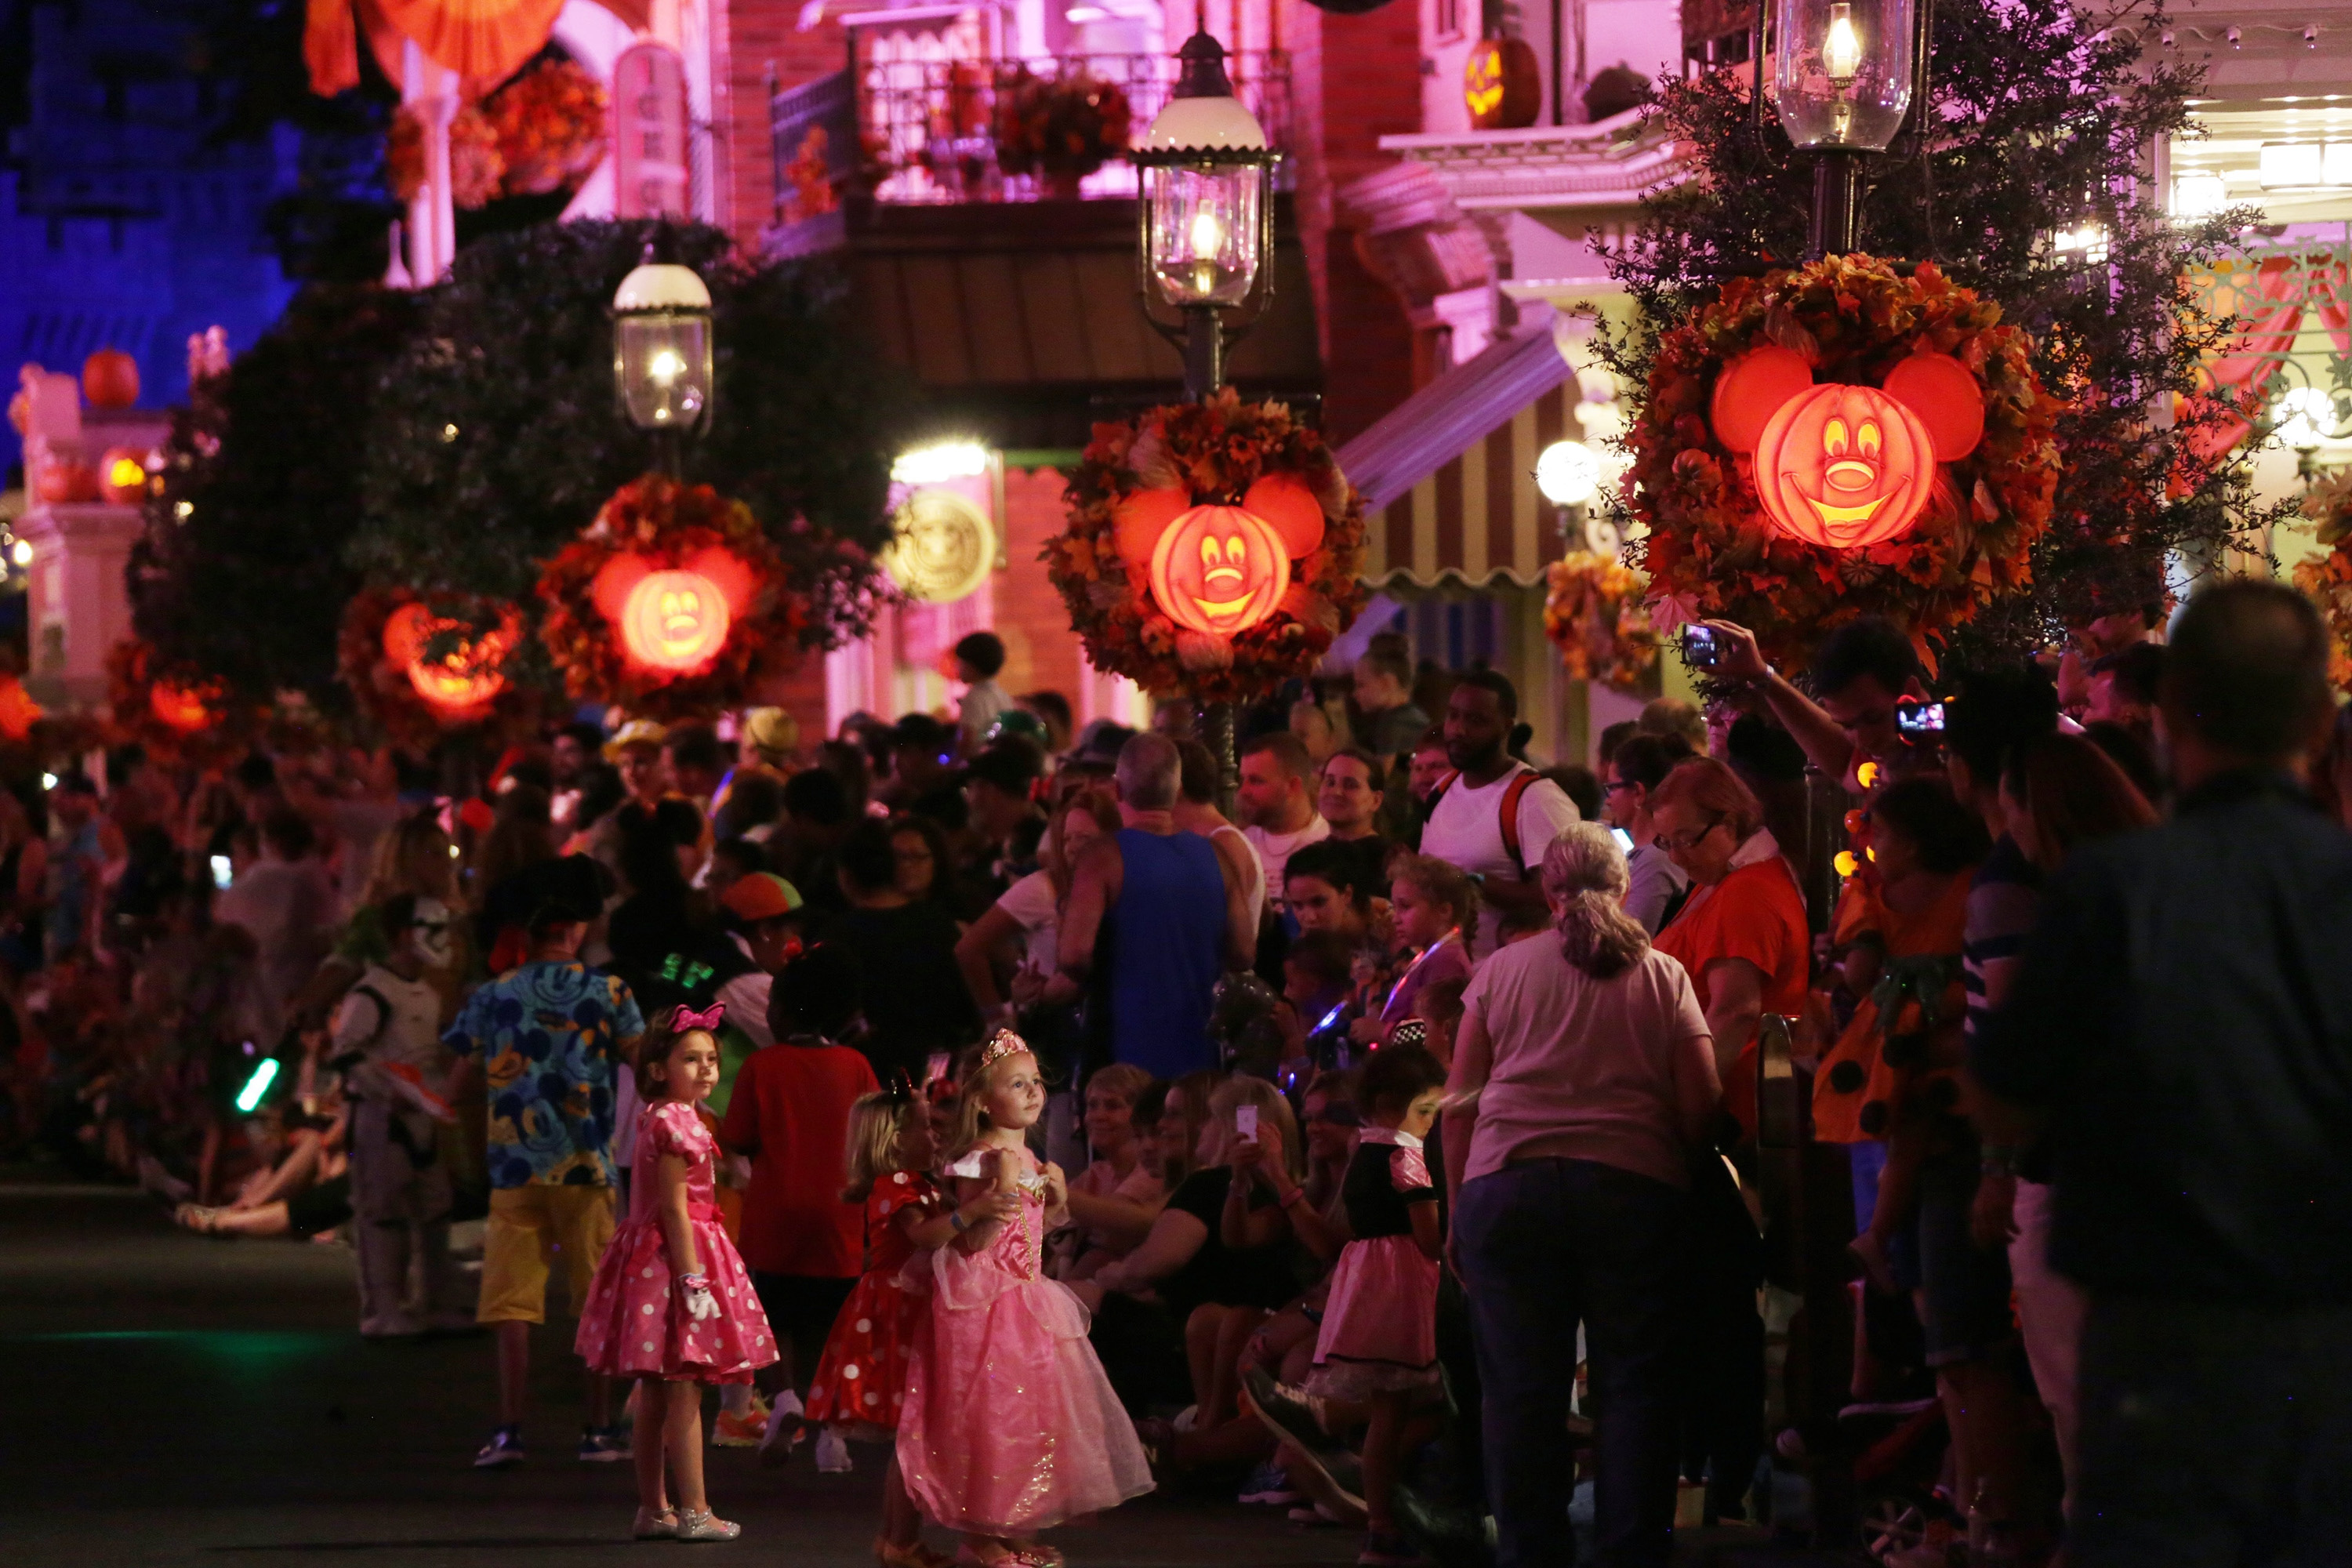 Halloween at the Theme Park in Orlando, Florida